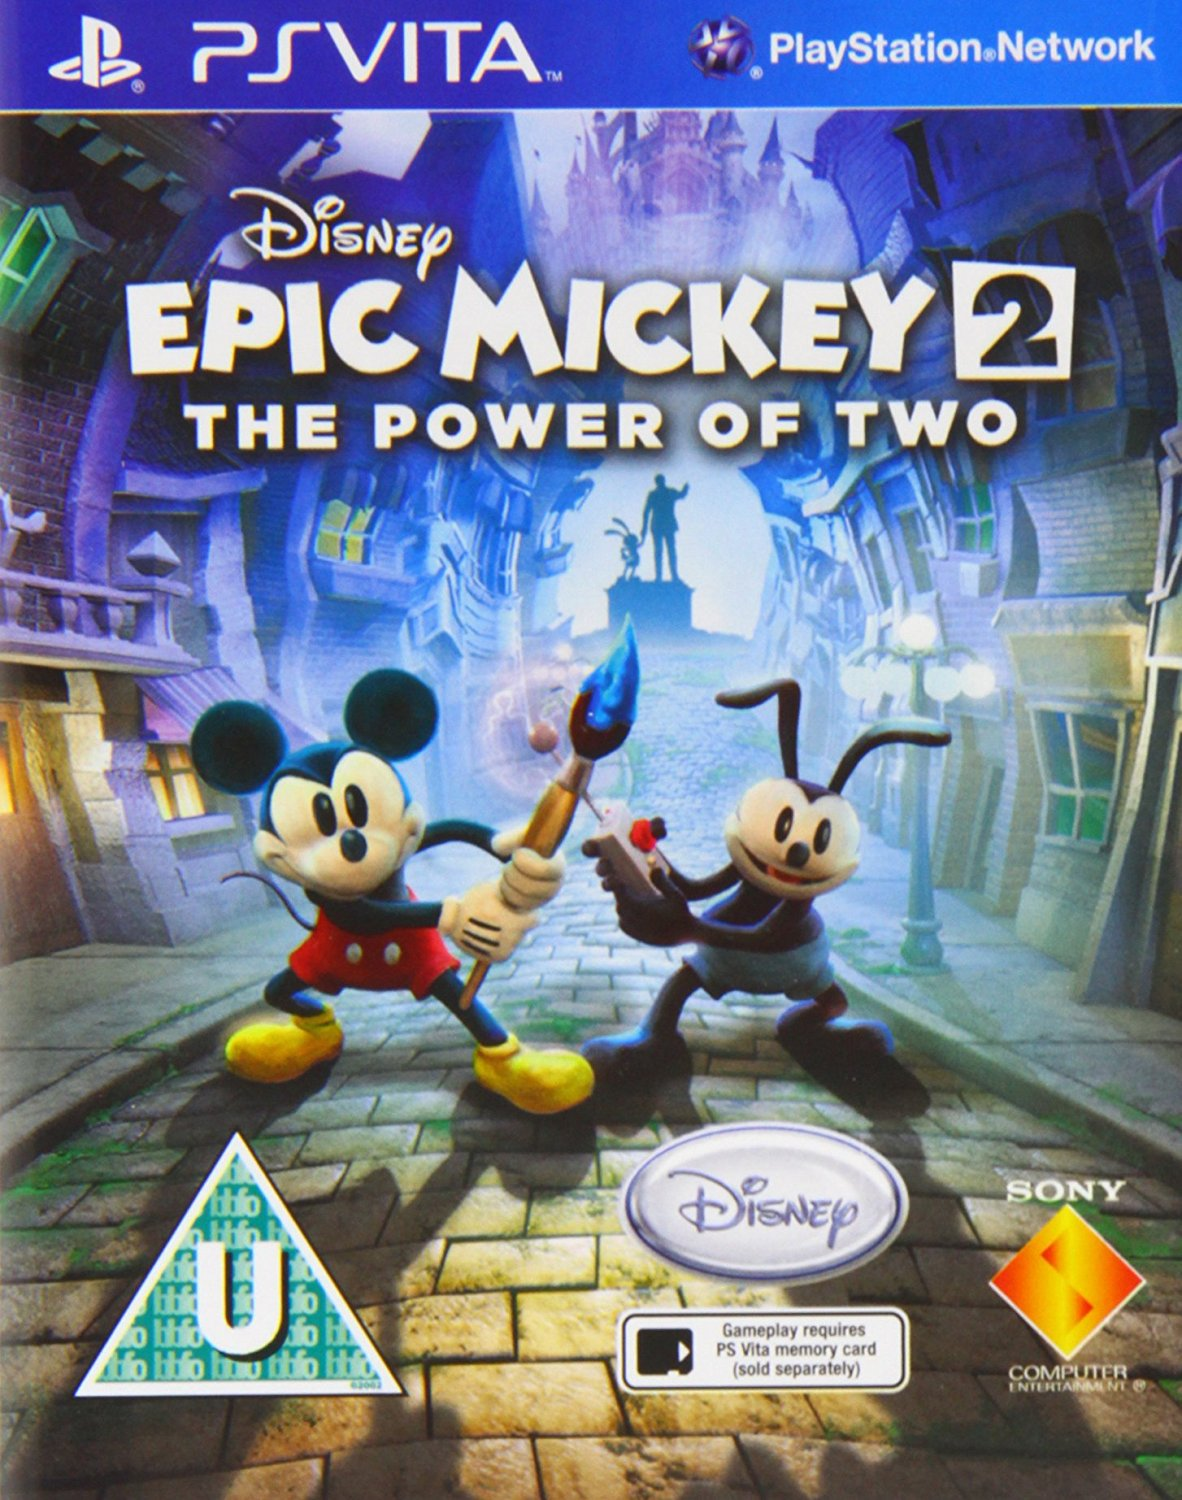 Disney Epic Mickey 2 The Power of Two - PS Vita Játékok